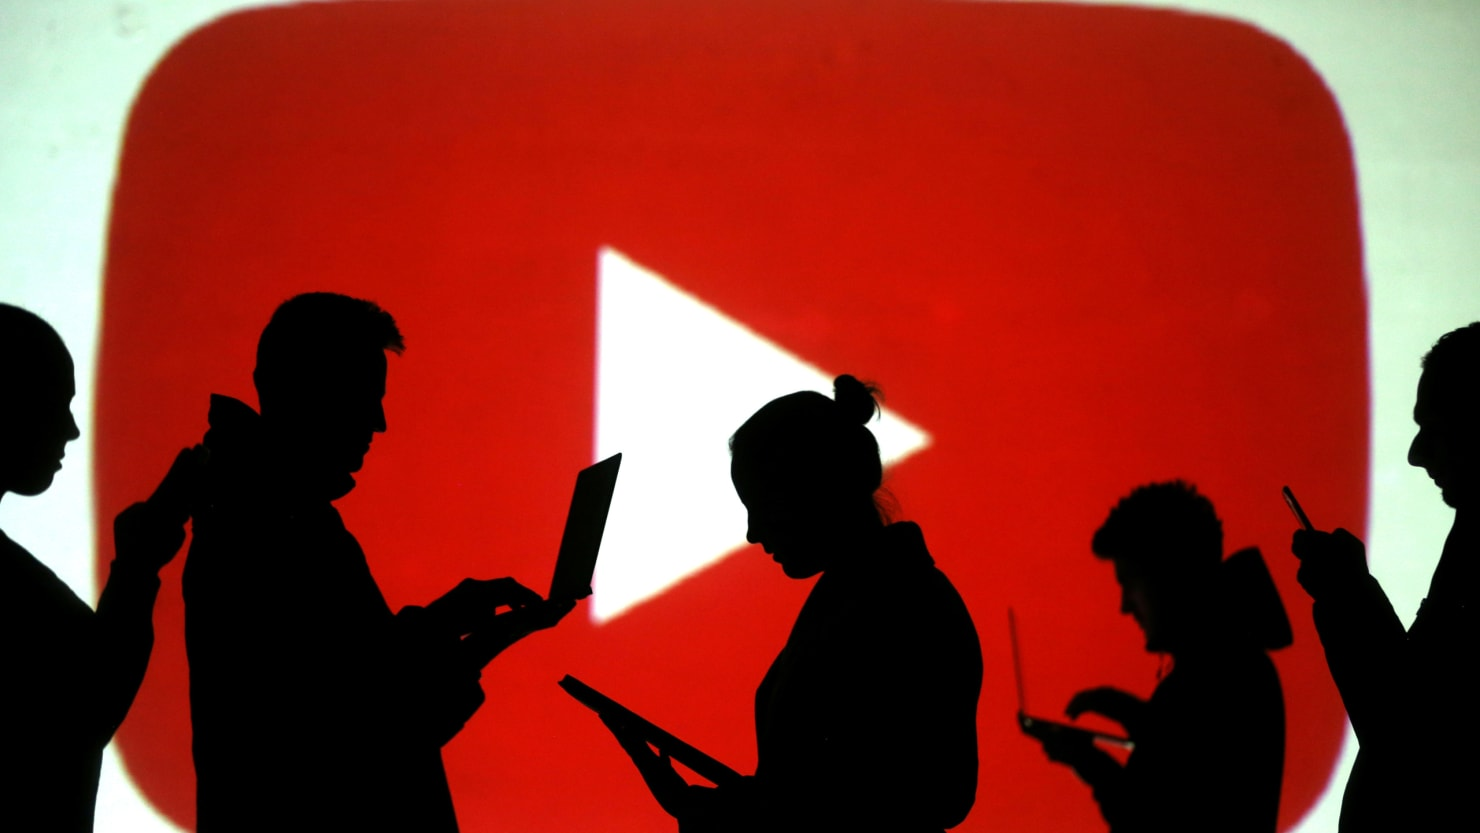 Youtube Says It's Removed 'Tens of Thousands' of Videos From New Zealand Mosque Attacks